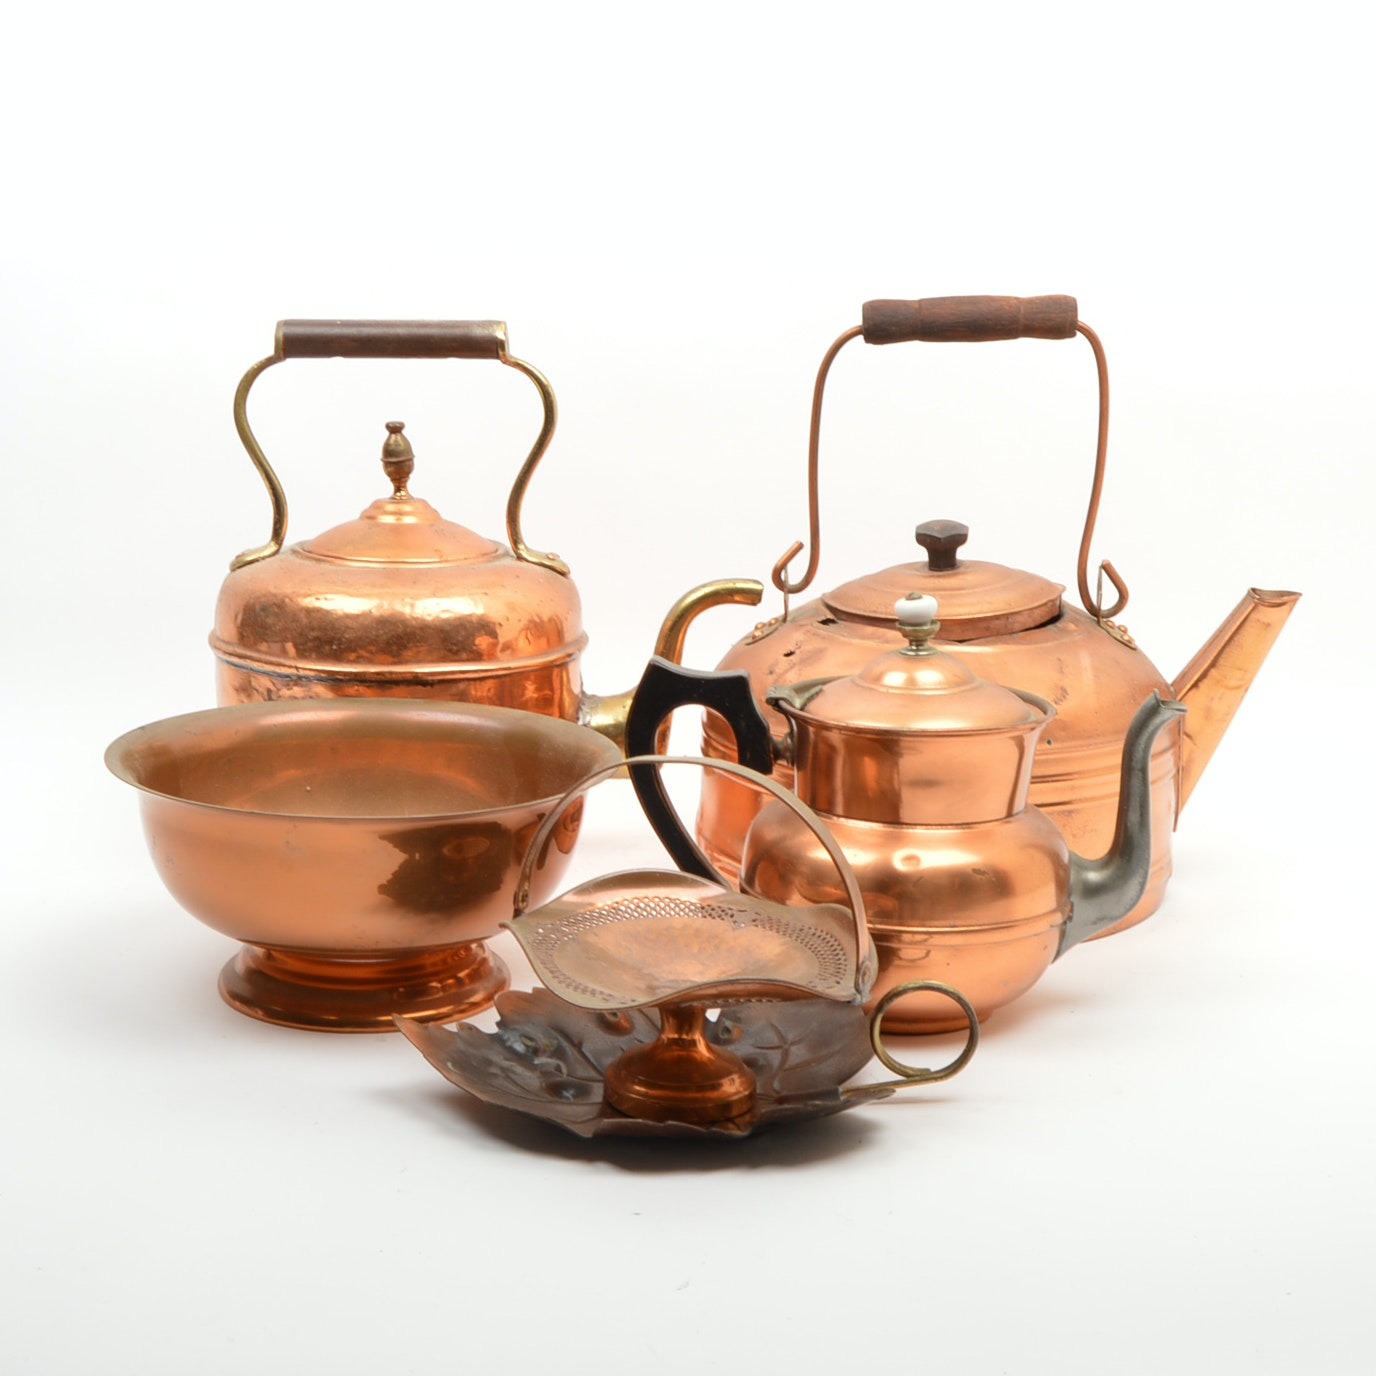 Copper and Copper Toned Kettles and Bowl